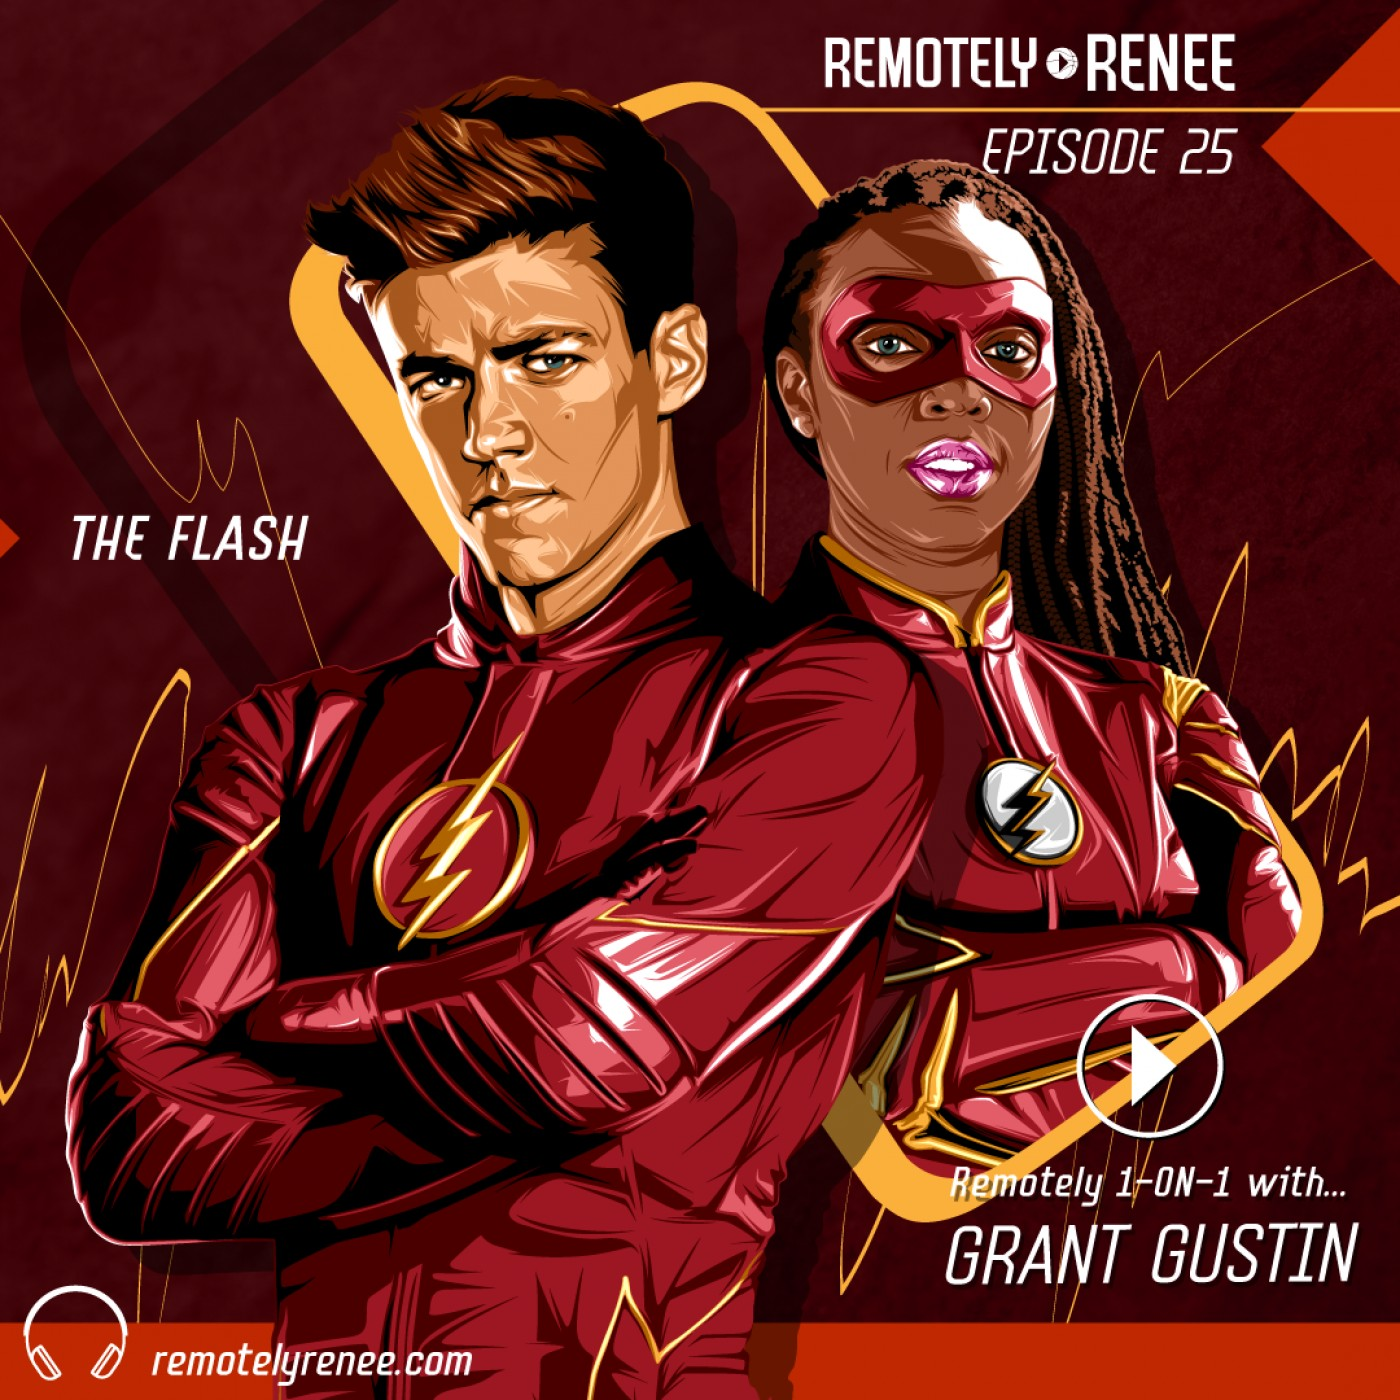 Ep 25.5 - Grant Gustin - The Flash IRL